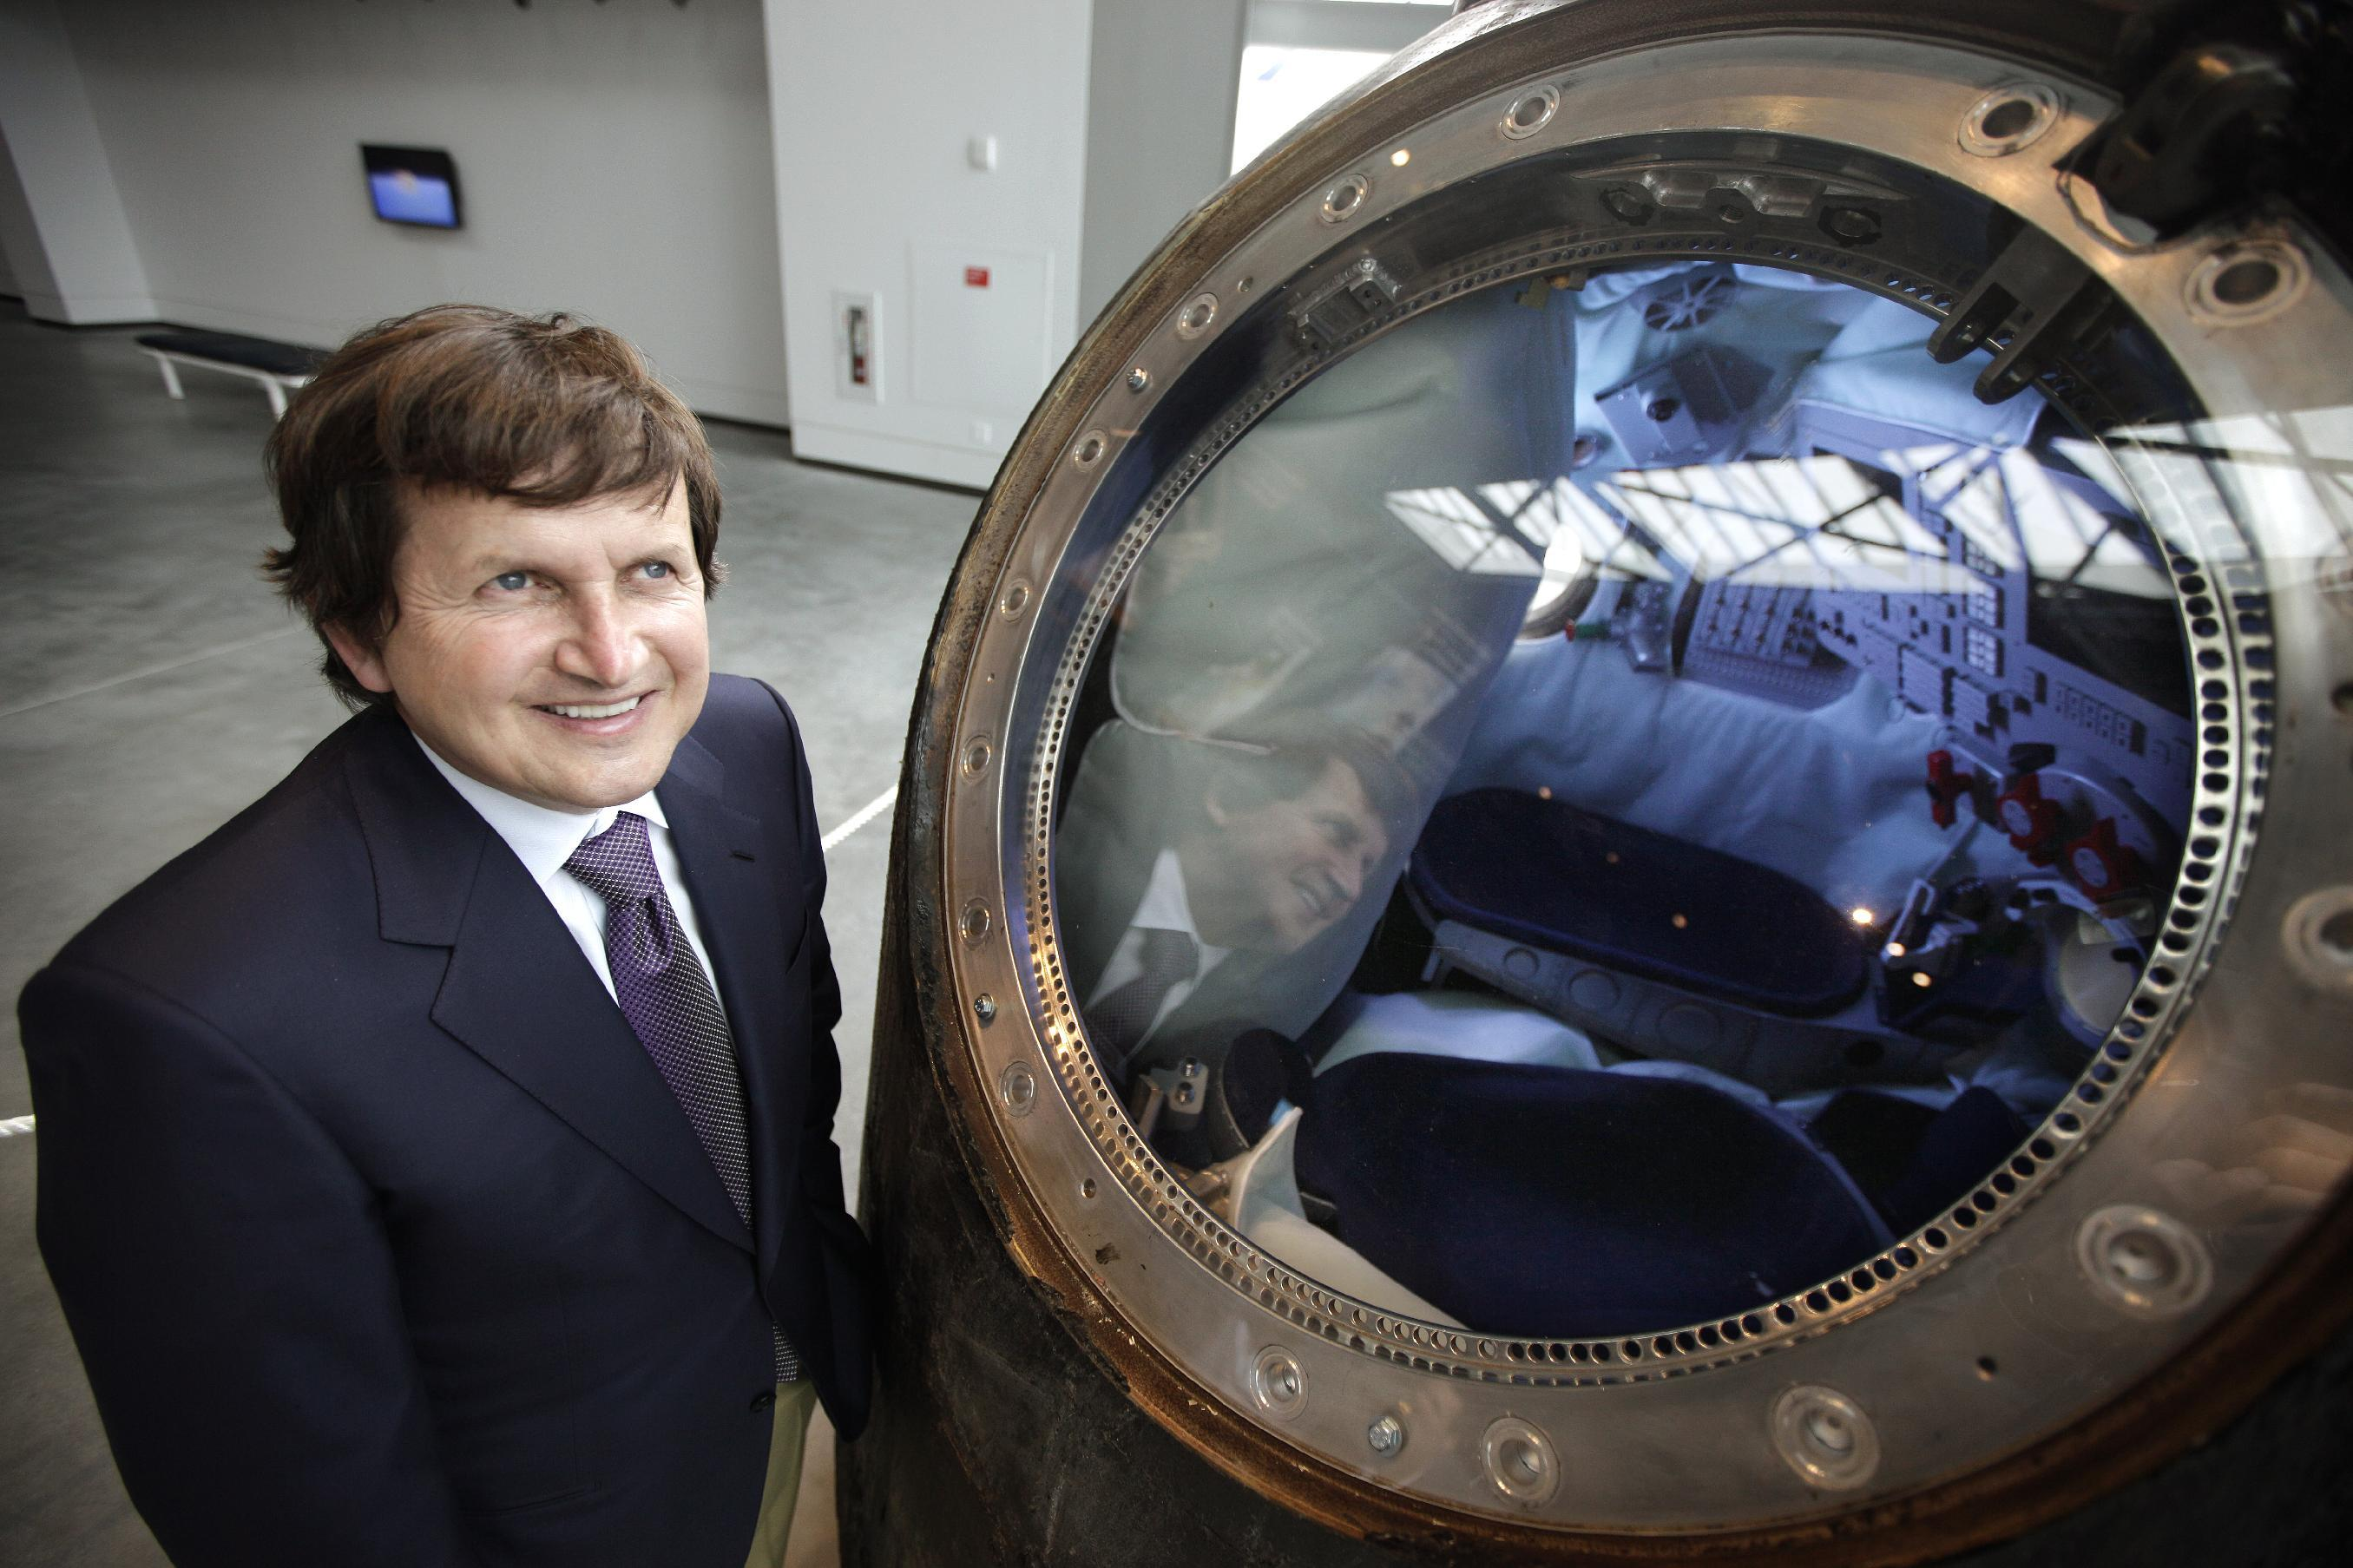 In this March 27, 2012, photo, Charles Simonyi, the only civilian to visit the International Space Station twice, poses for a photo next to the Soyuz TMA-14 descent module that took him to the International Space Station on his second trip into space, at the Seattle's Museum of Flight's new space gallery, which is named after him. The Microsoft billionaire is still obsessed with space, but has no plans to take a third trip, instead he's focused on publishing a physics book written by his father and continuing to work with the museum. (AP Photo/Ted S. Warren)